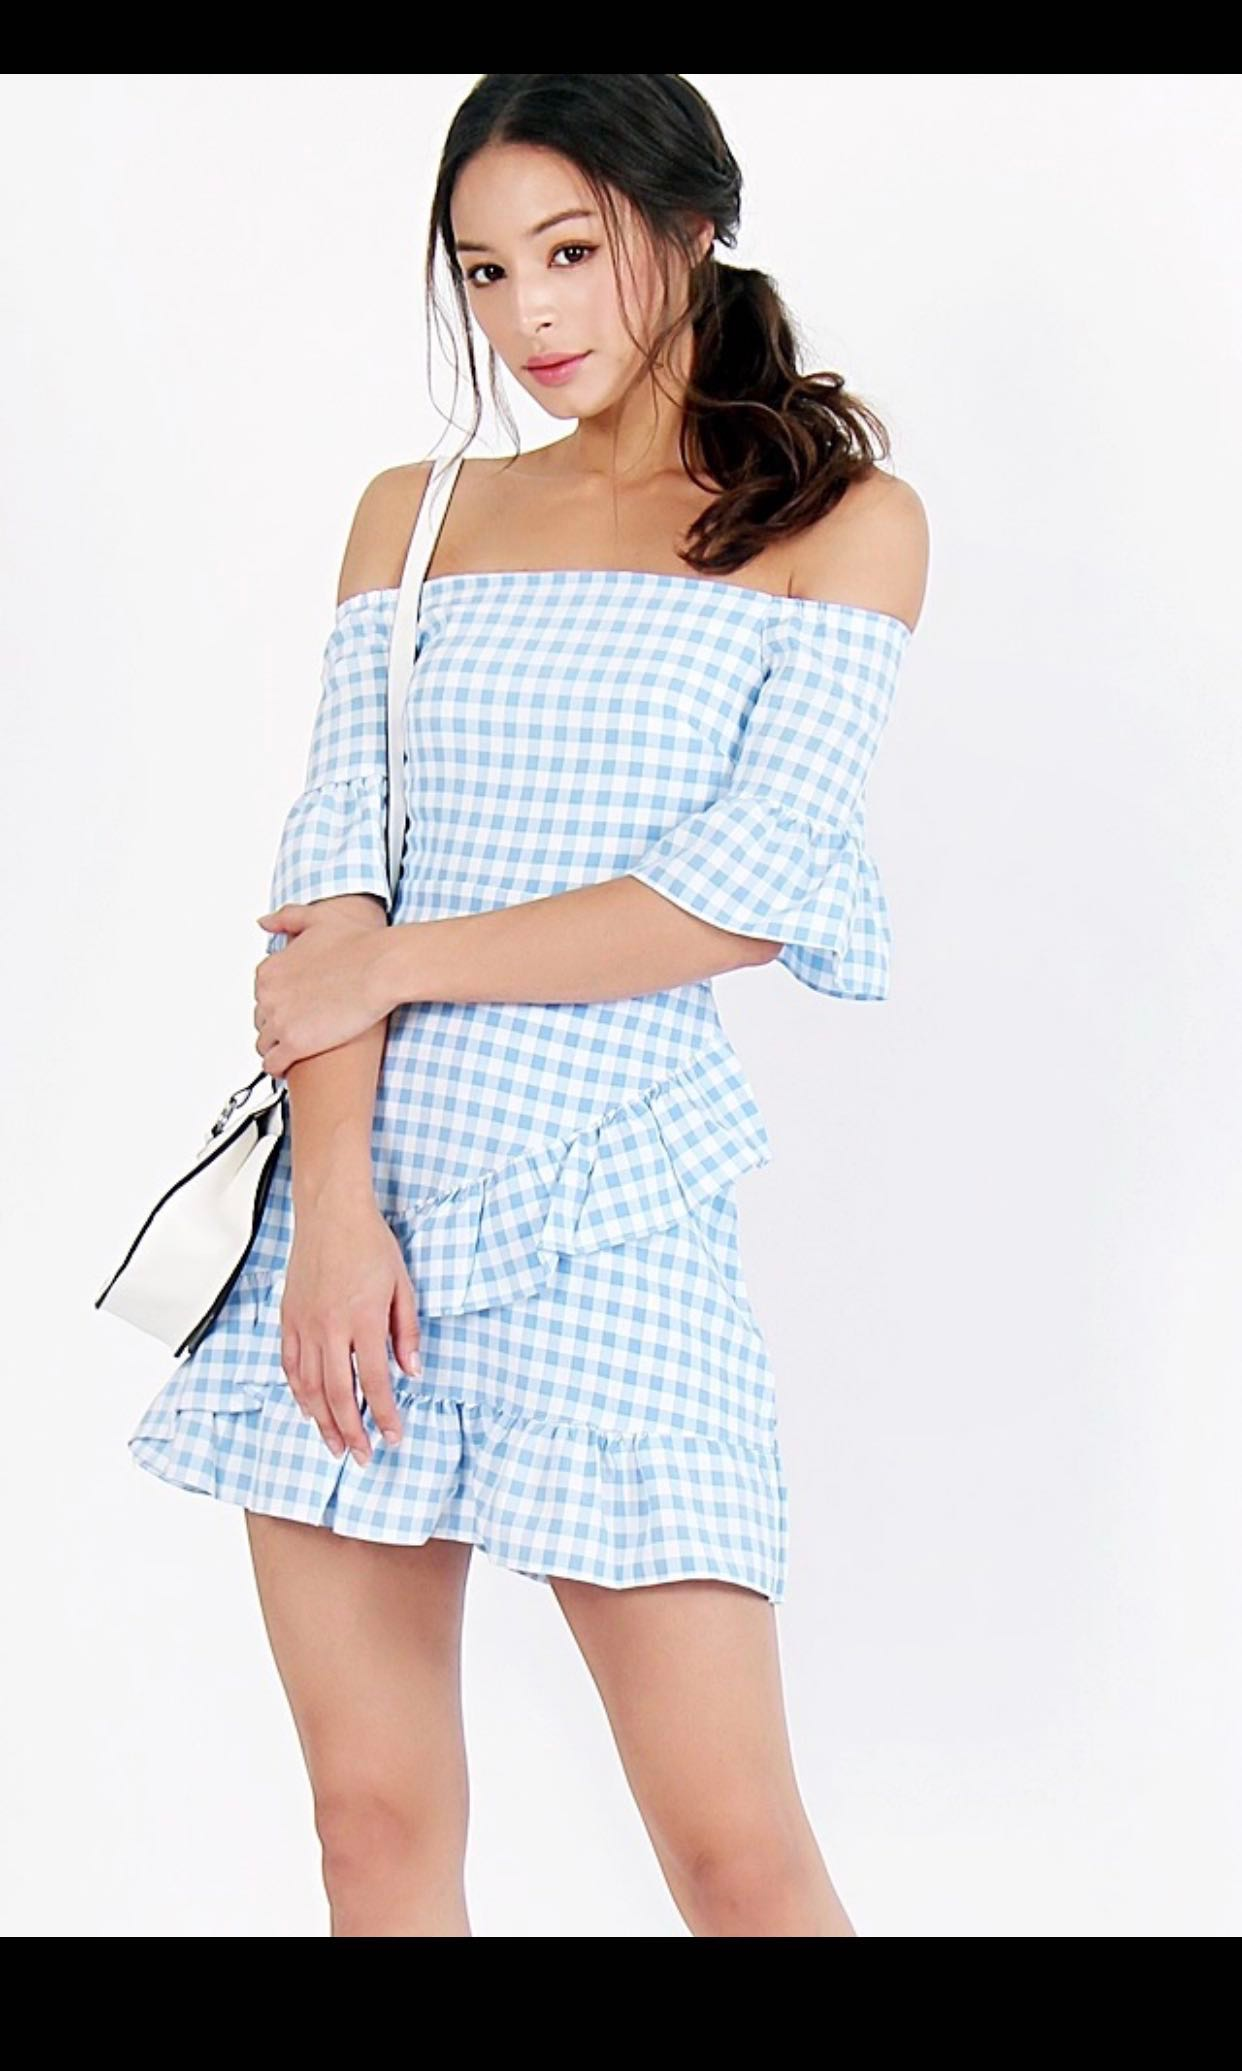 ba38dd893e83 Home · Women s Fashion · Clothes · Rompers   Jumpsuits. photo photo photo  photo